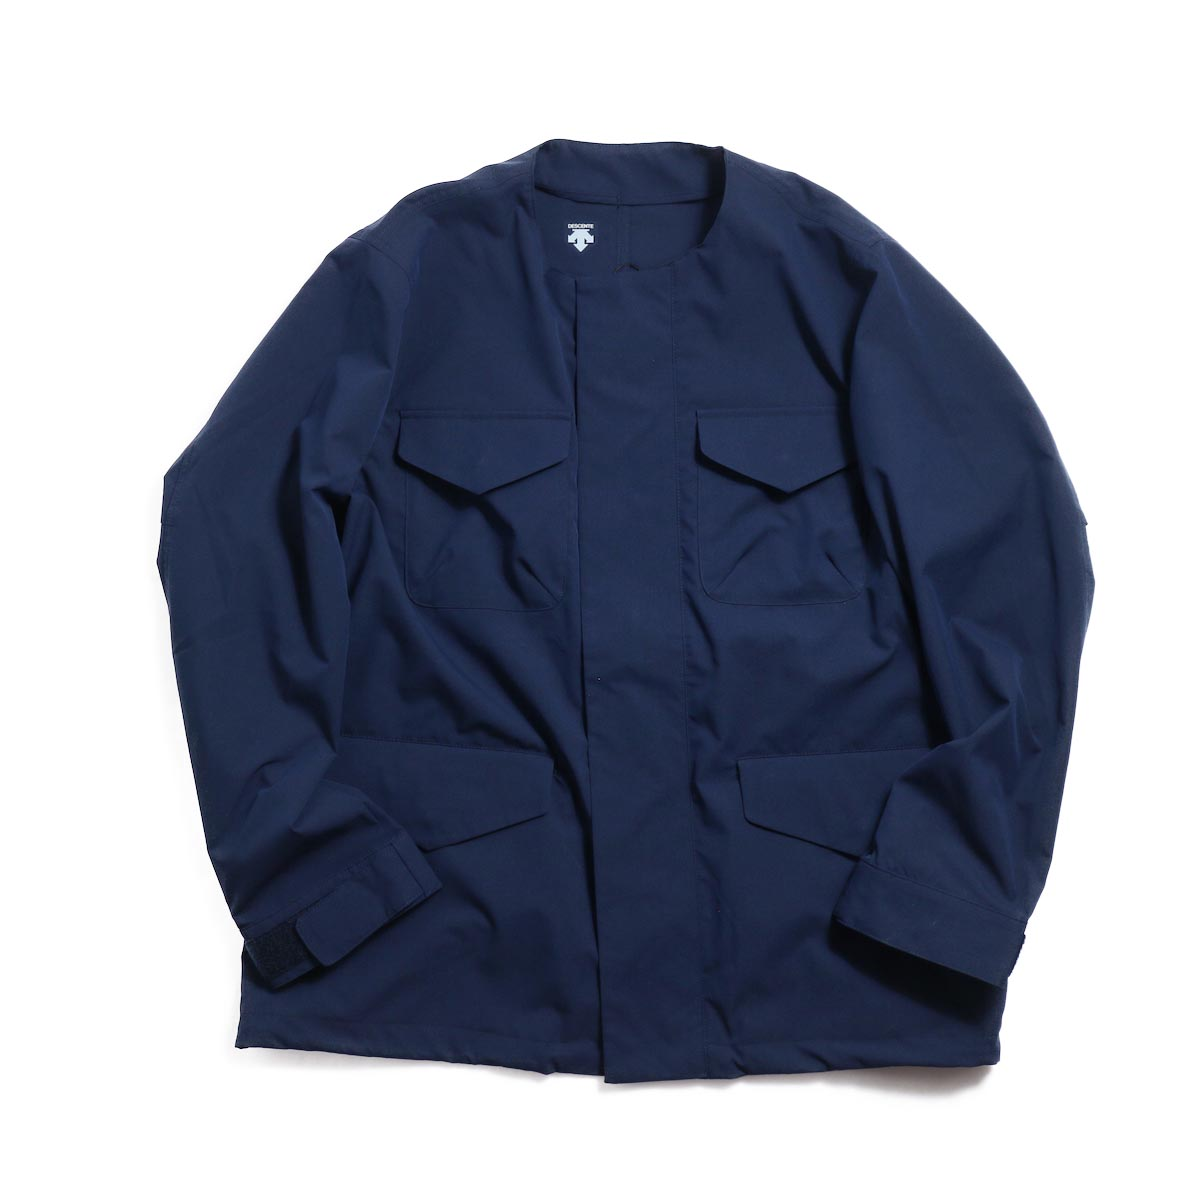 DESCENTE ddd / Utility Jacket -Navy